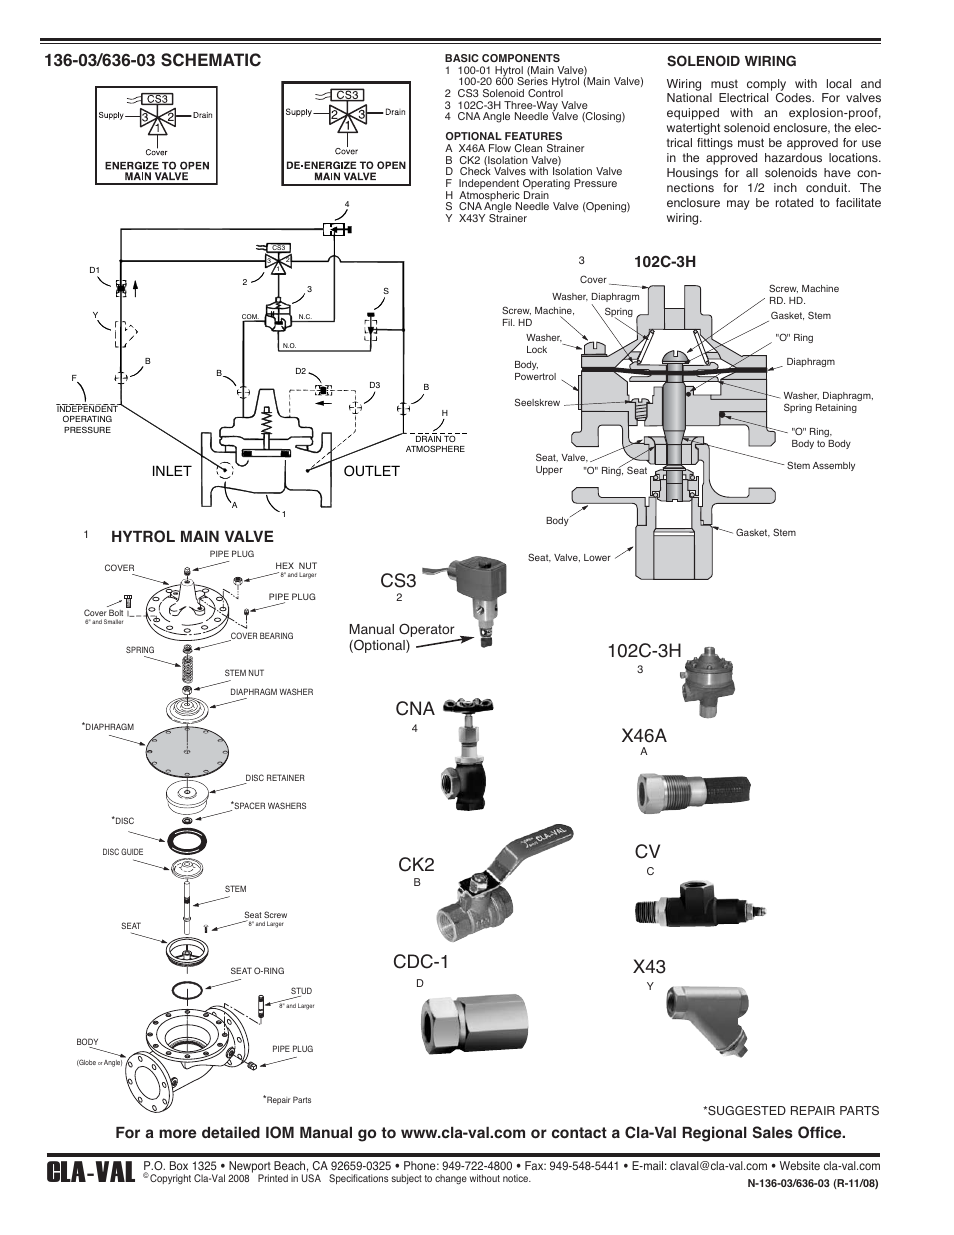 whelen tir3 wiring diagram   26 wiring diagram images